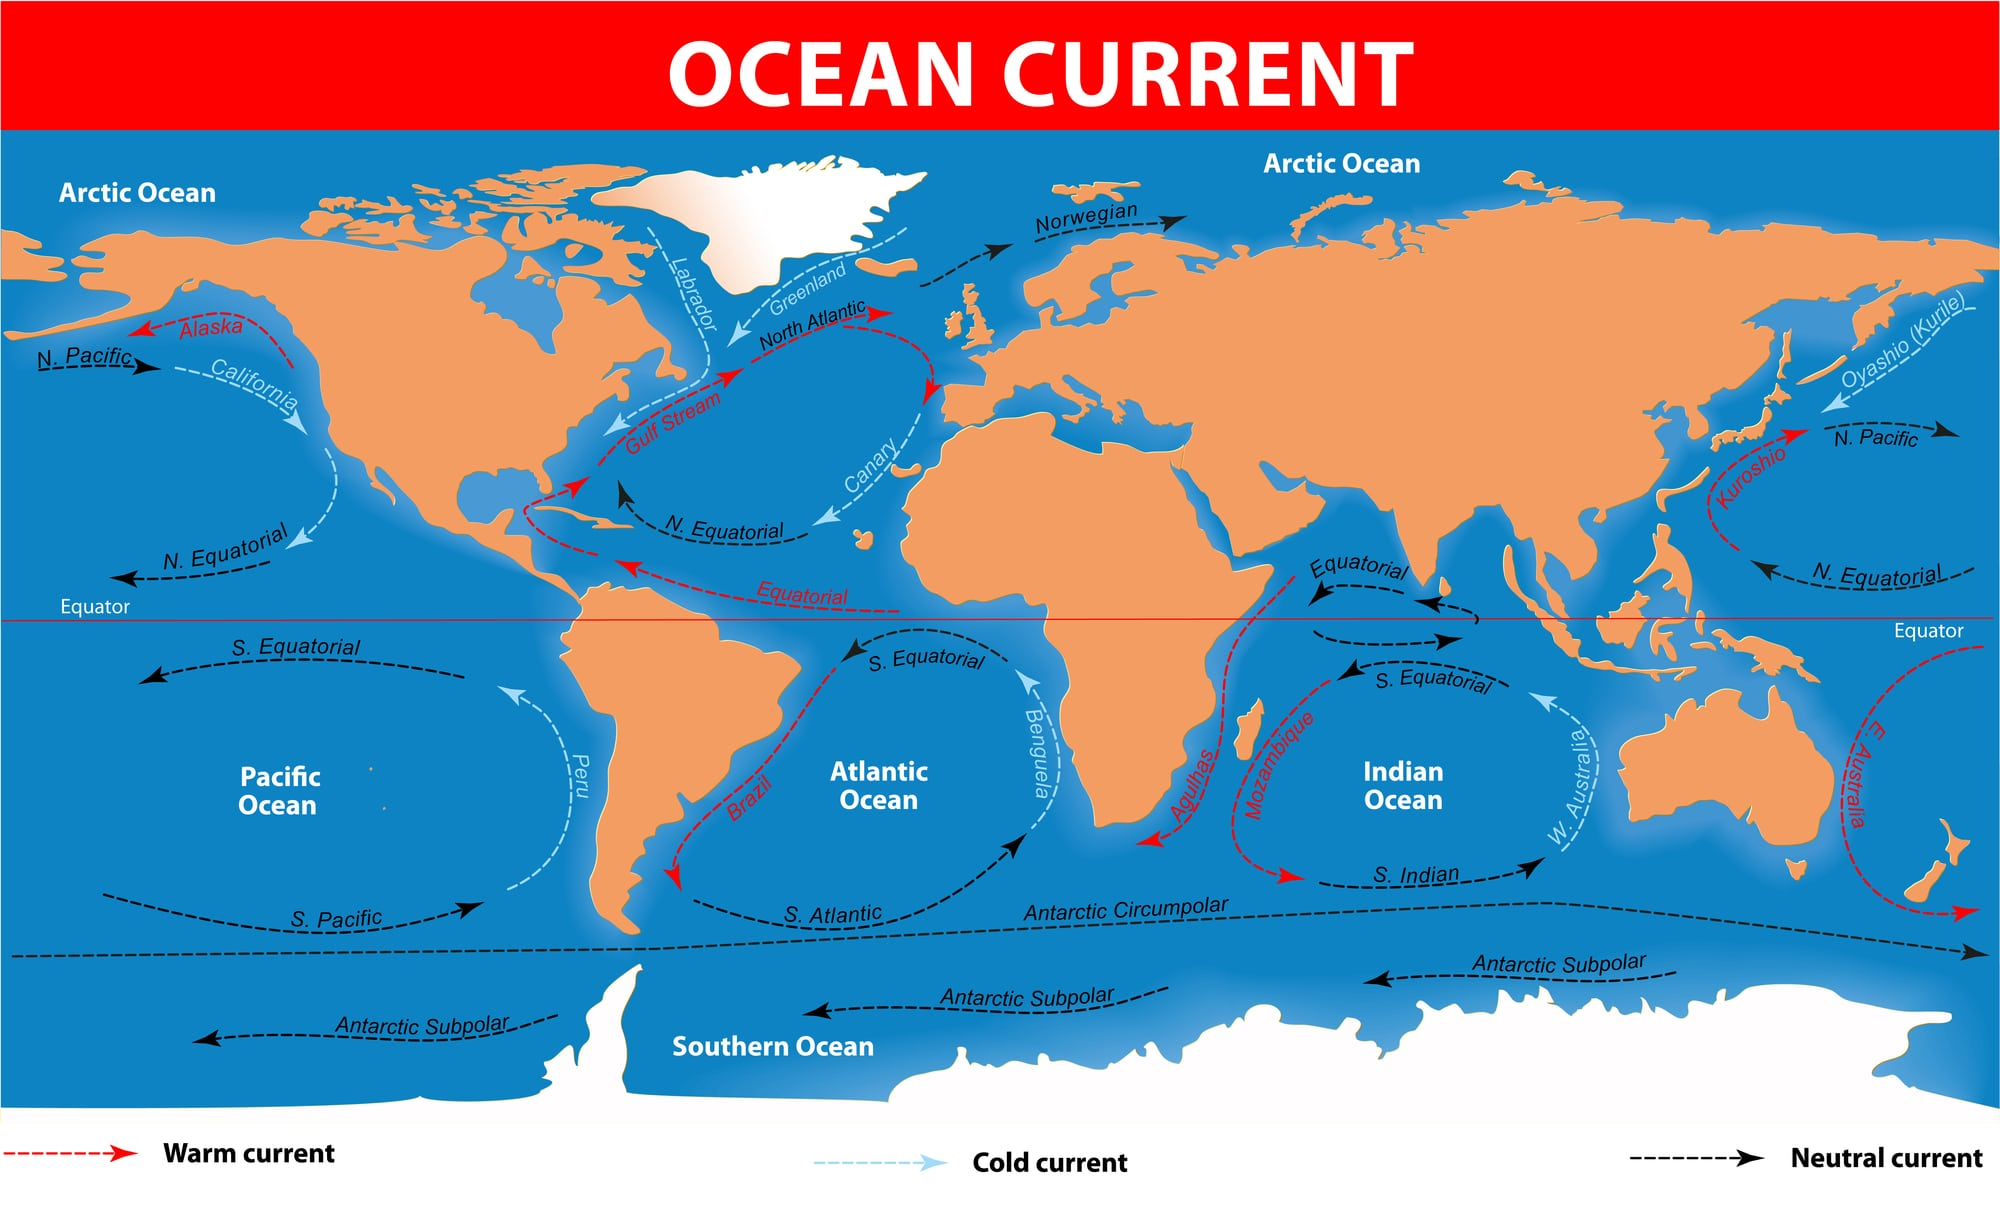 Conveyor stop? Why the Gulf Stream is slowing down and what it threatens the planet